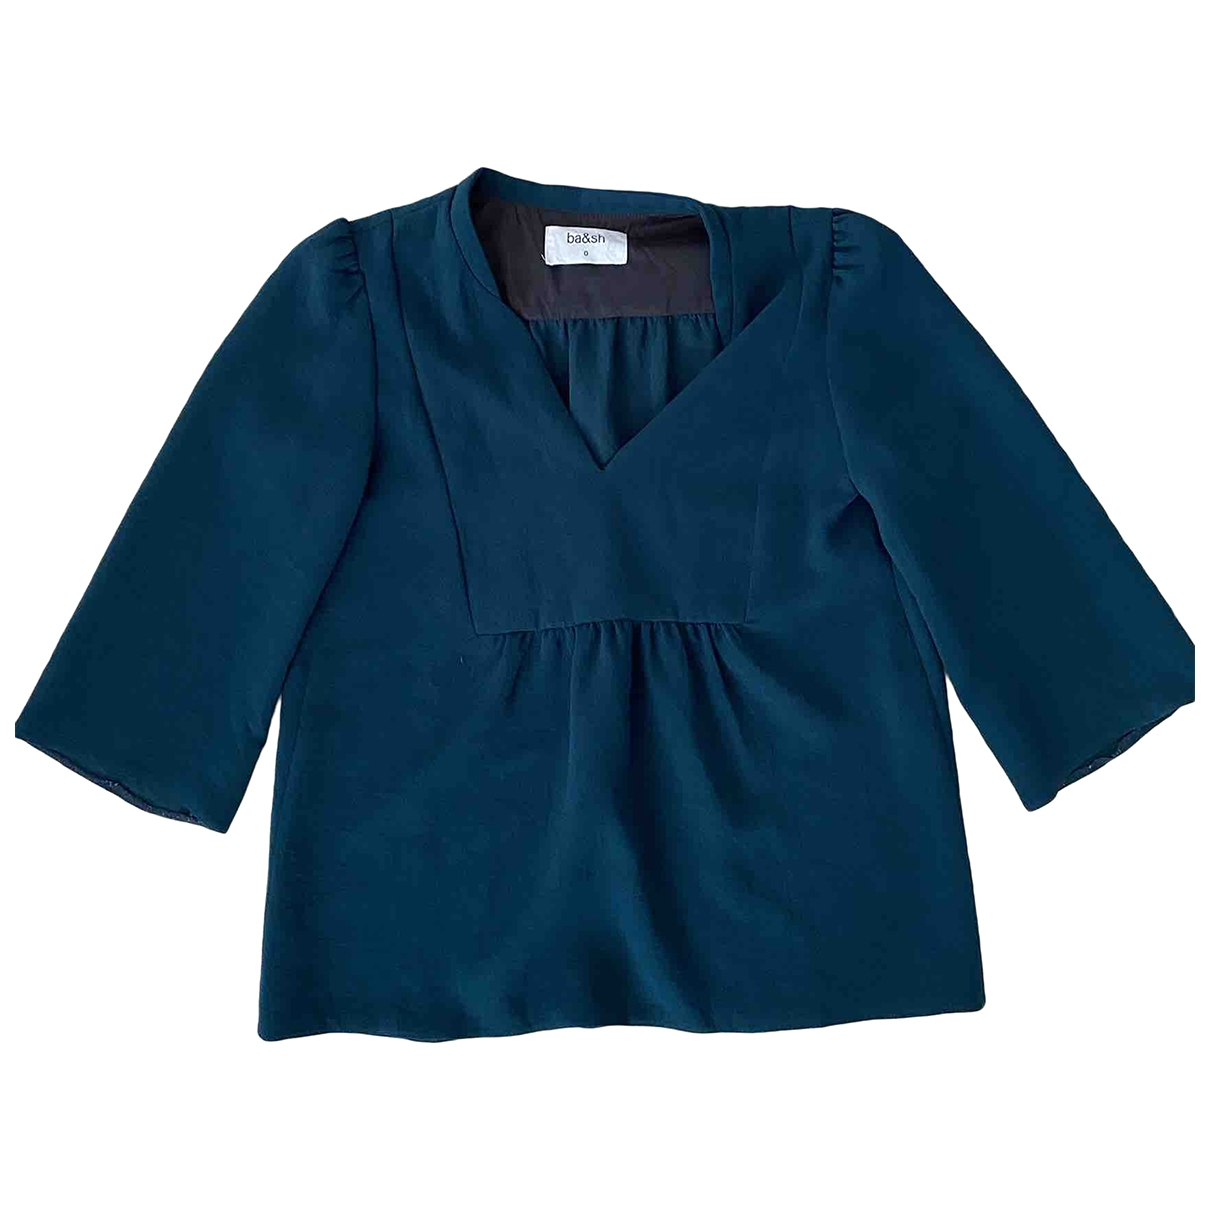 Ba&sh \N Green  top for Women 36 FR